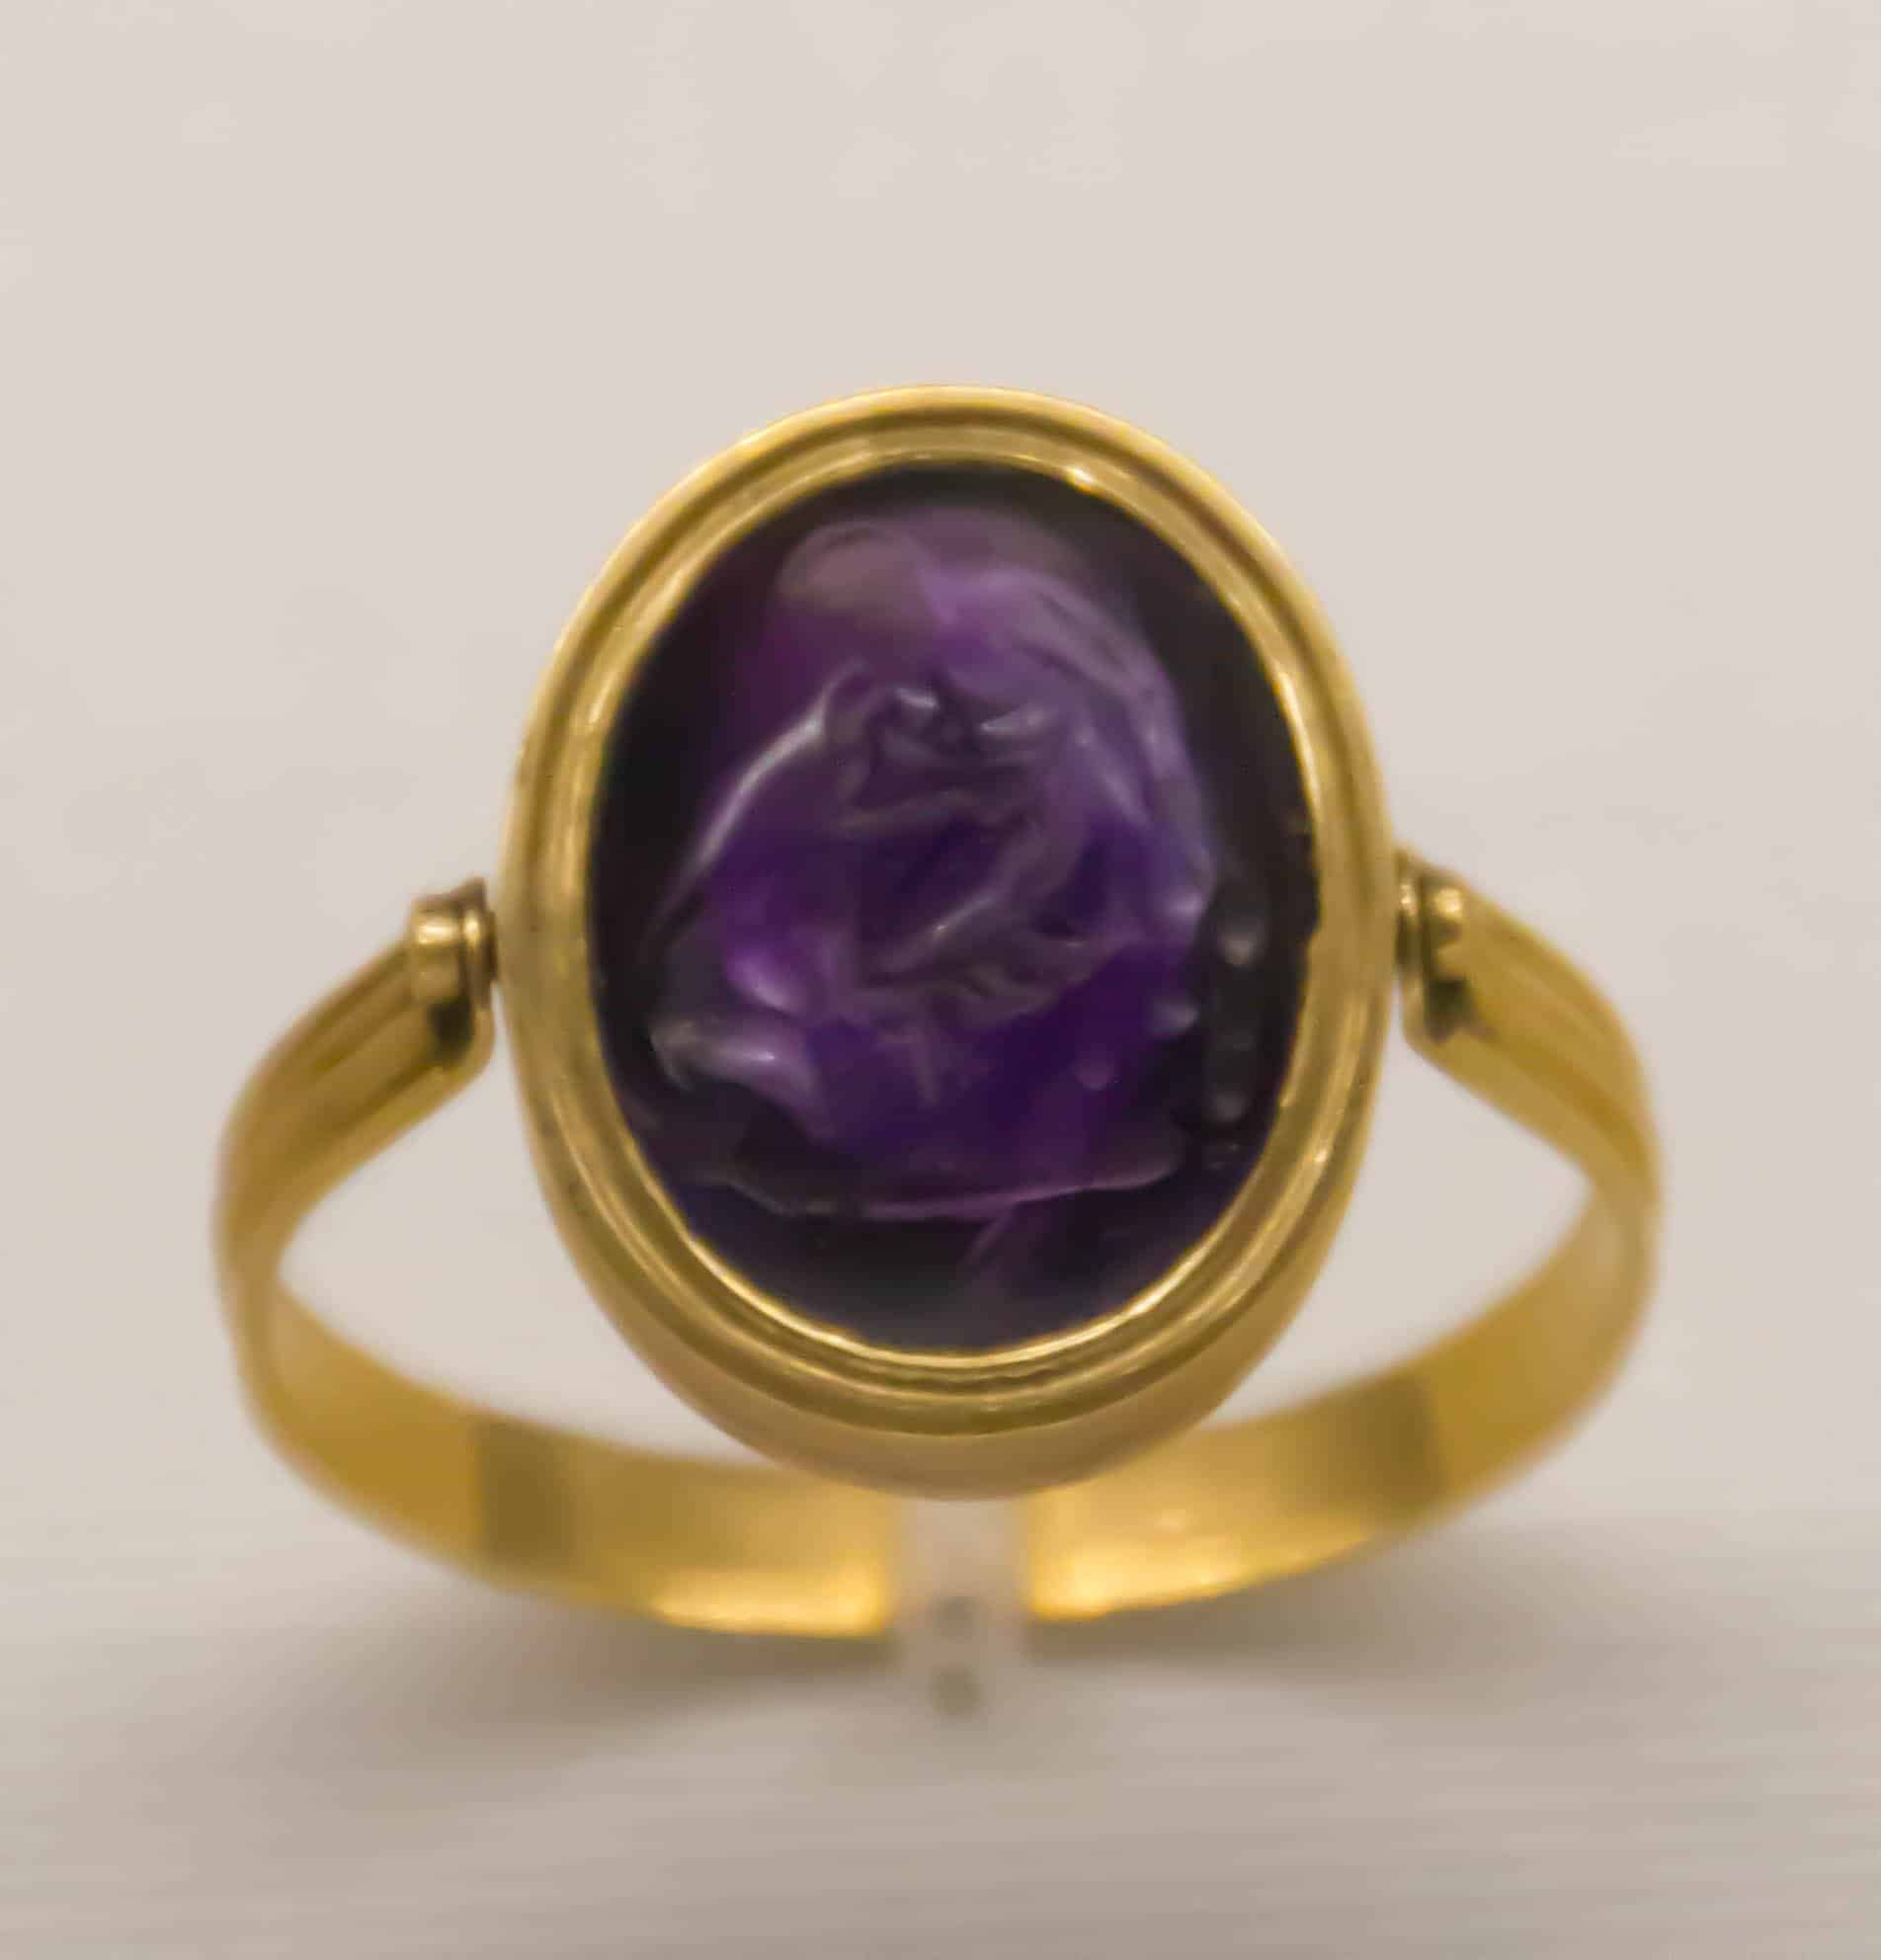 Signet Ring Italy Early 19th Century Gold Amethyst Hercules Cerberus.jpg